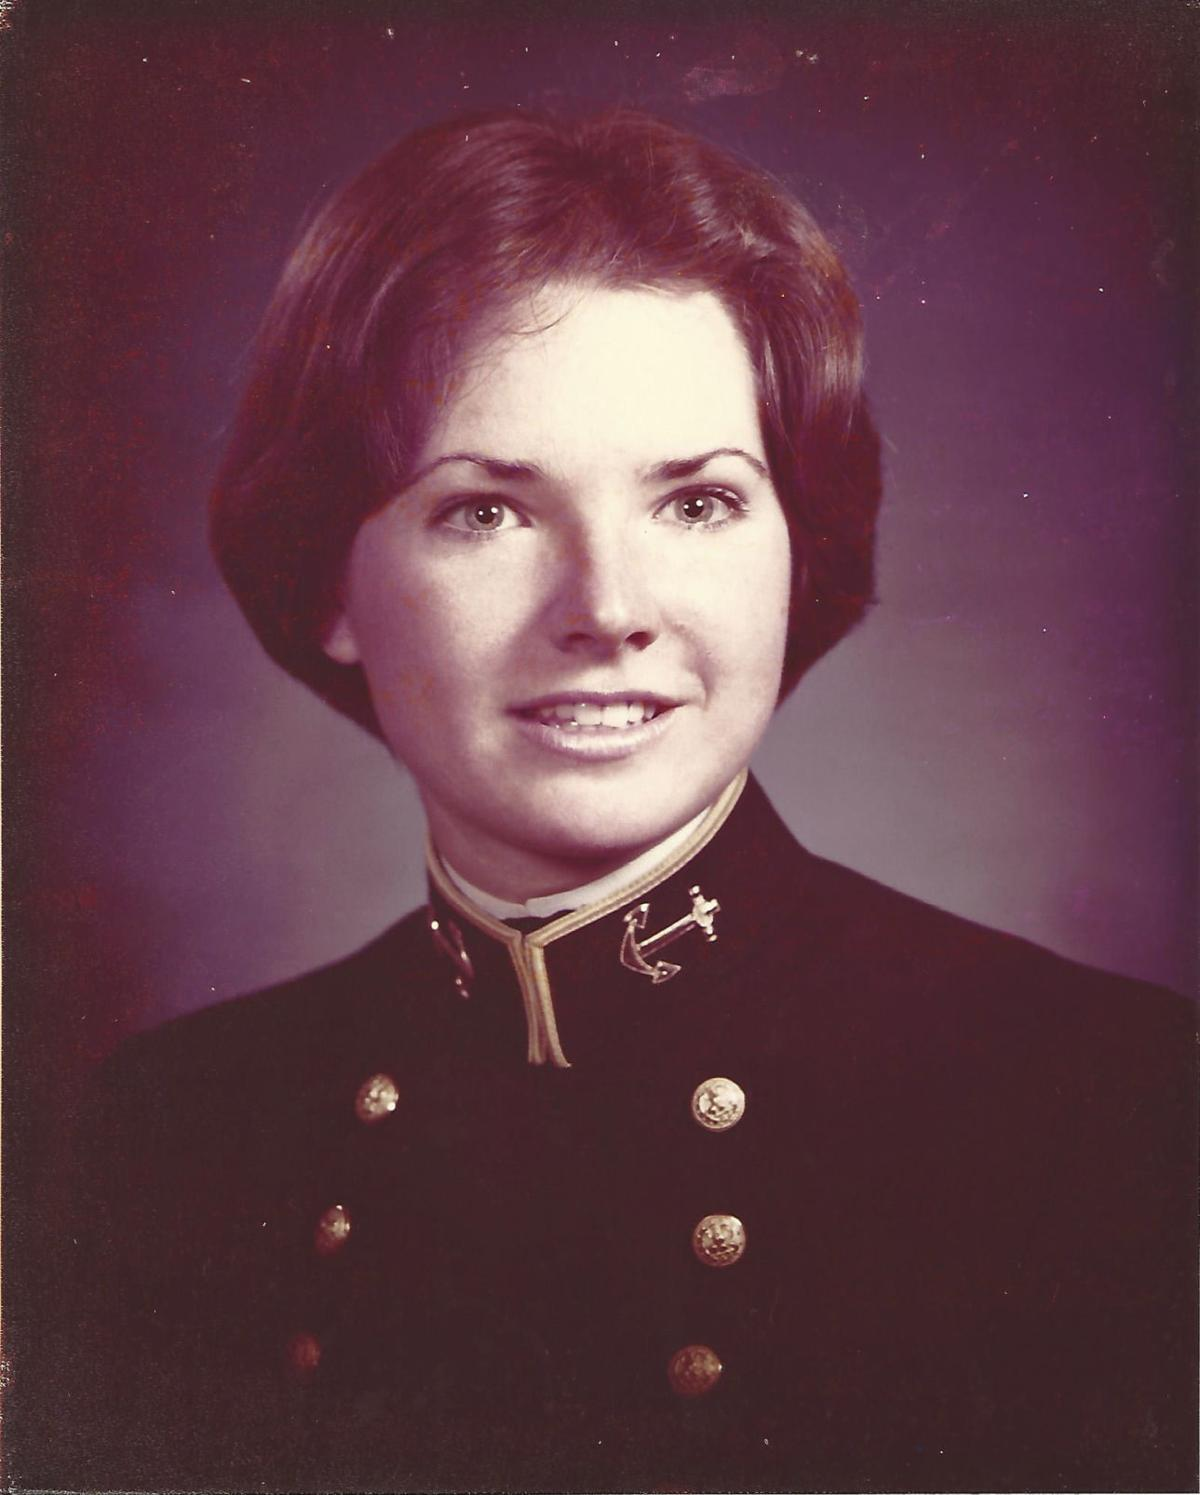 71c61e993 Life not easy for first class of women at U.S. Naval Academy | Local ...